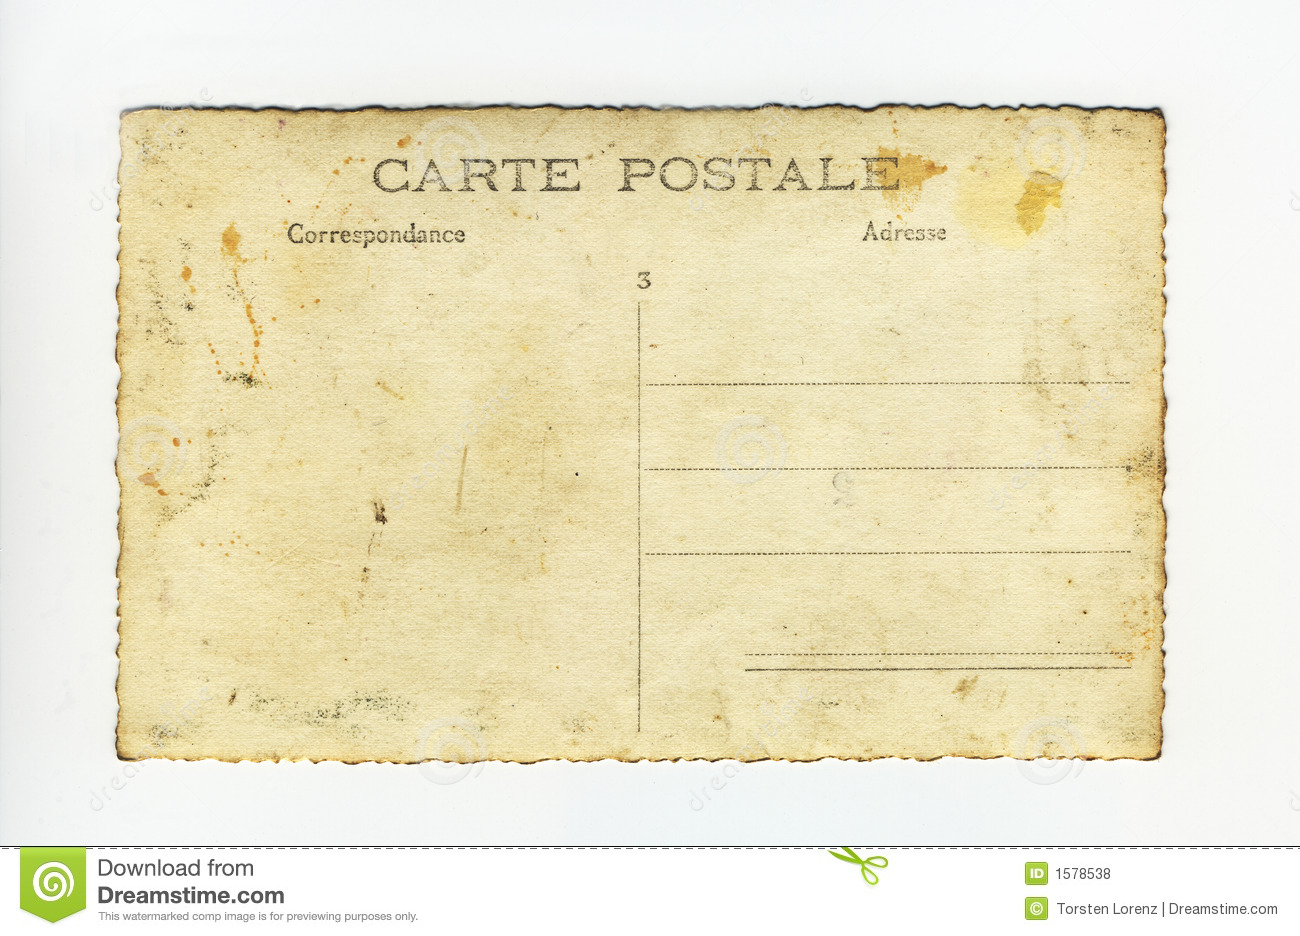 Carte Postale Retro carte postale stock images - download 235 photos